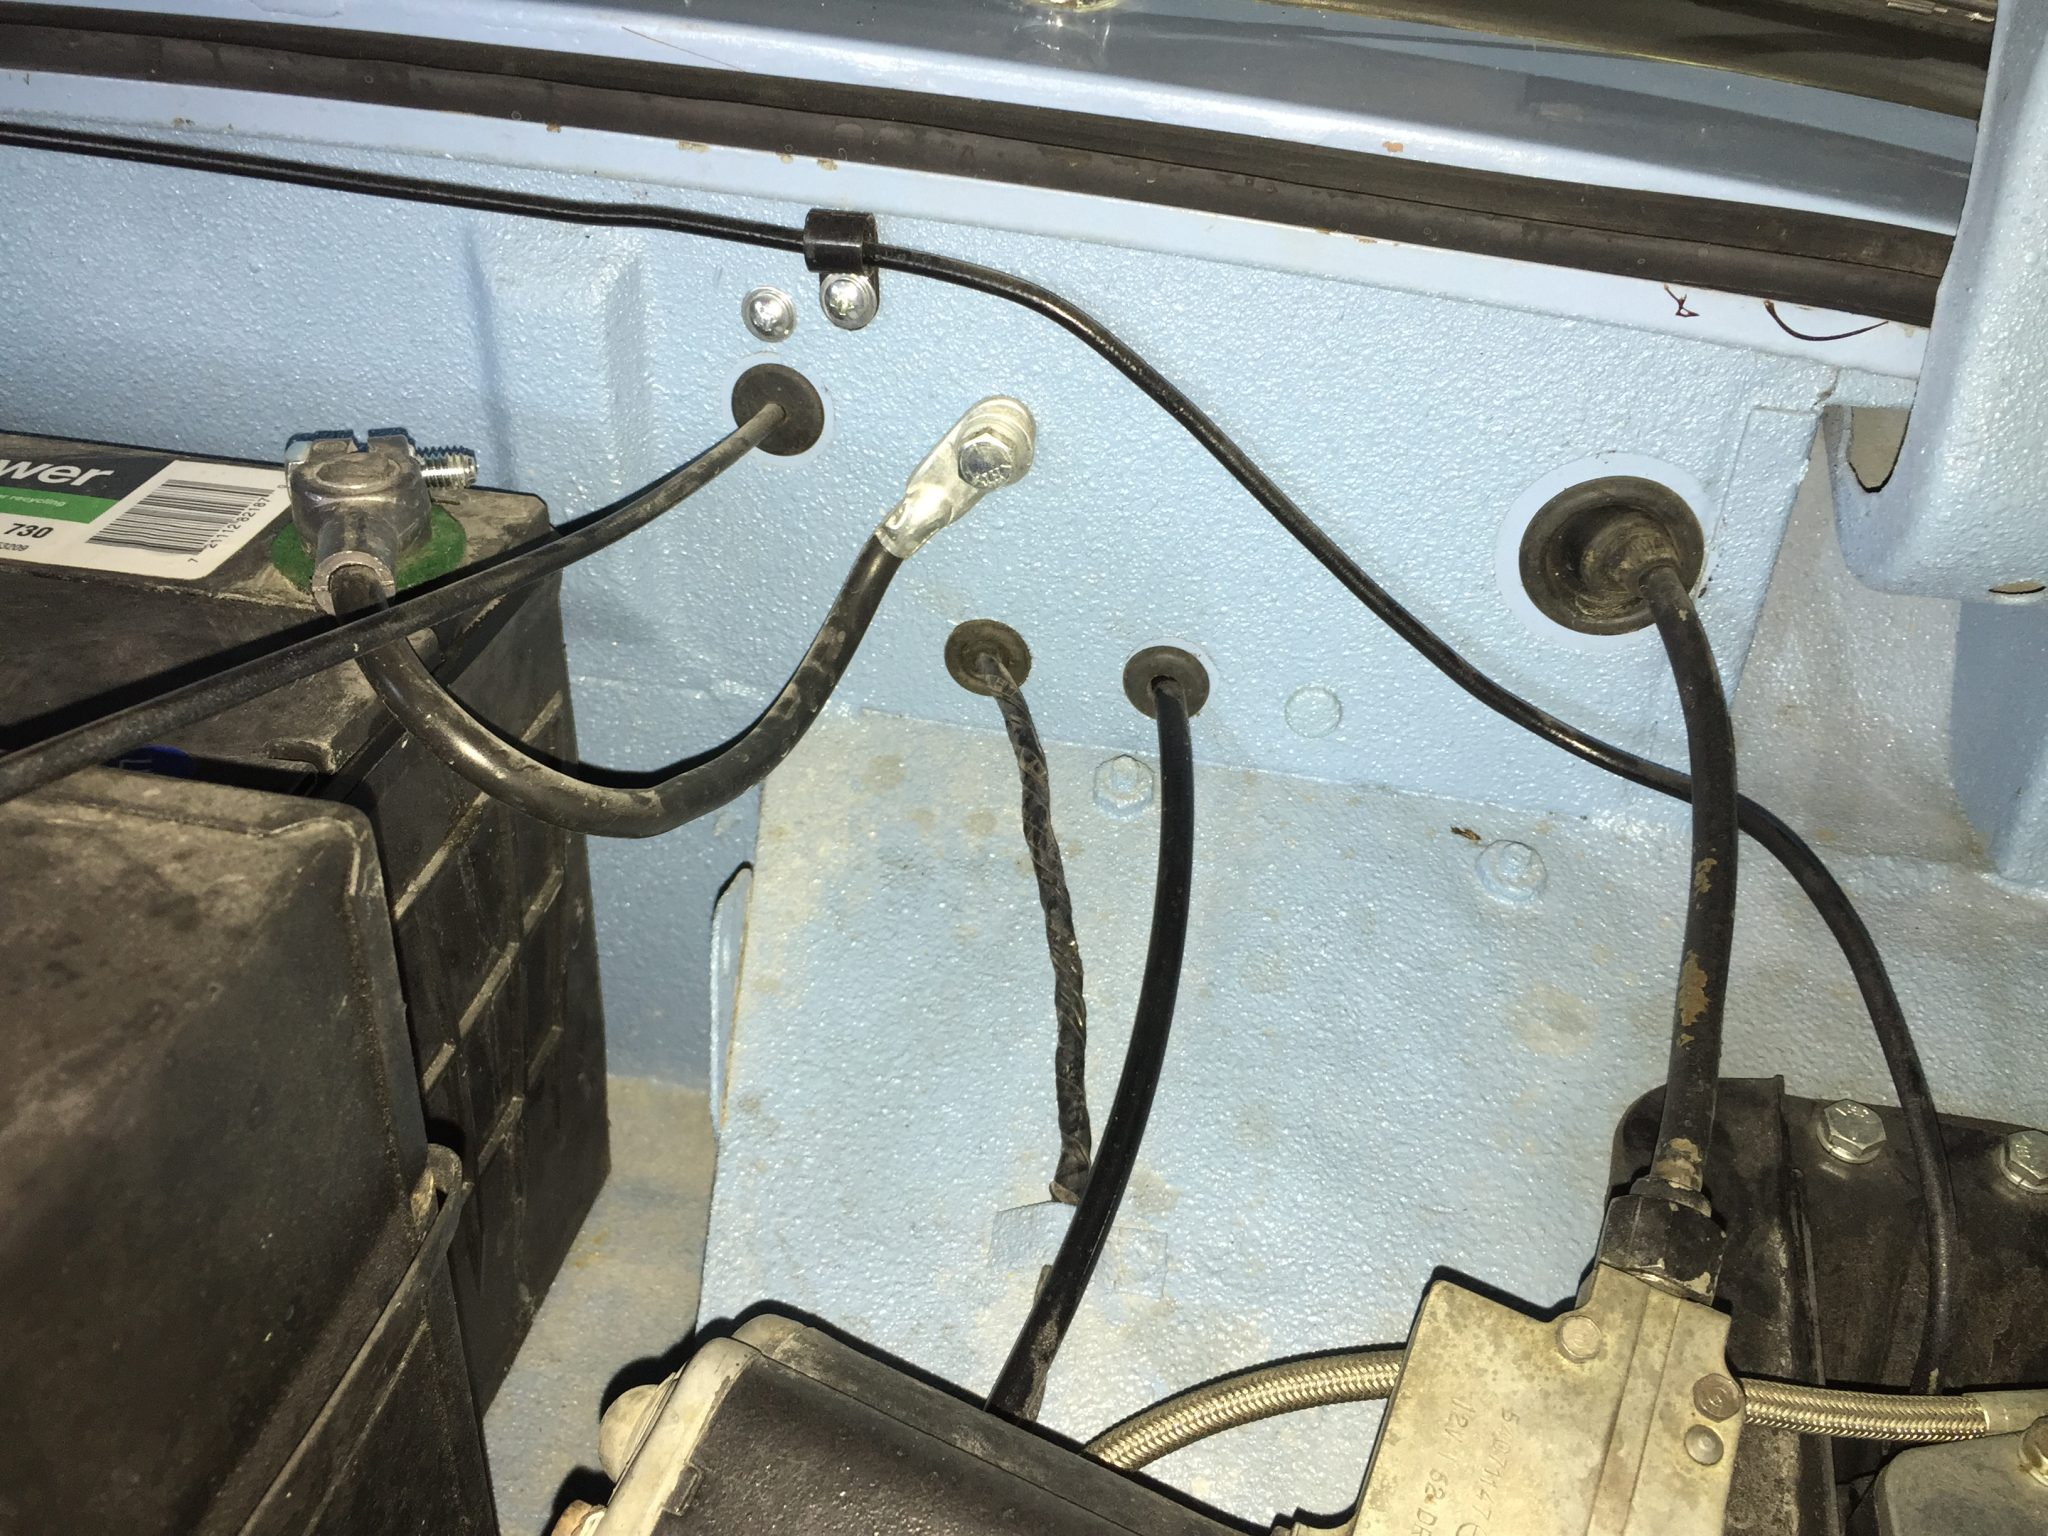 How To Make A Bugeye Sprite Tach Cable Fit Tachwiringdiagram Rebuilt Underdash Wiring This Routing Will Put Undue Kinks In The Behind Instrument And It More Likely That Your Gauge Be Jumpy